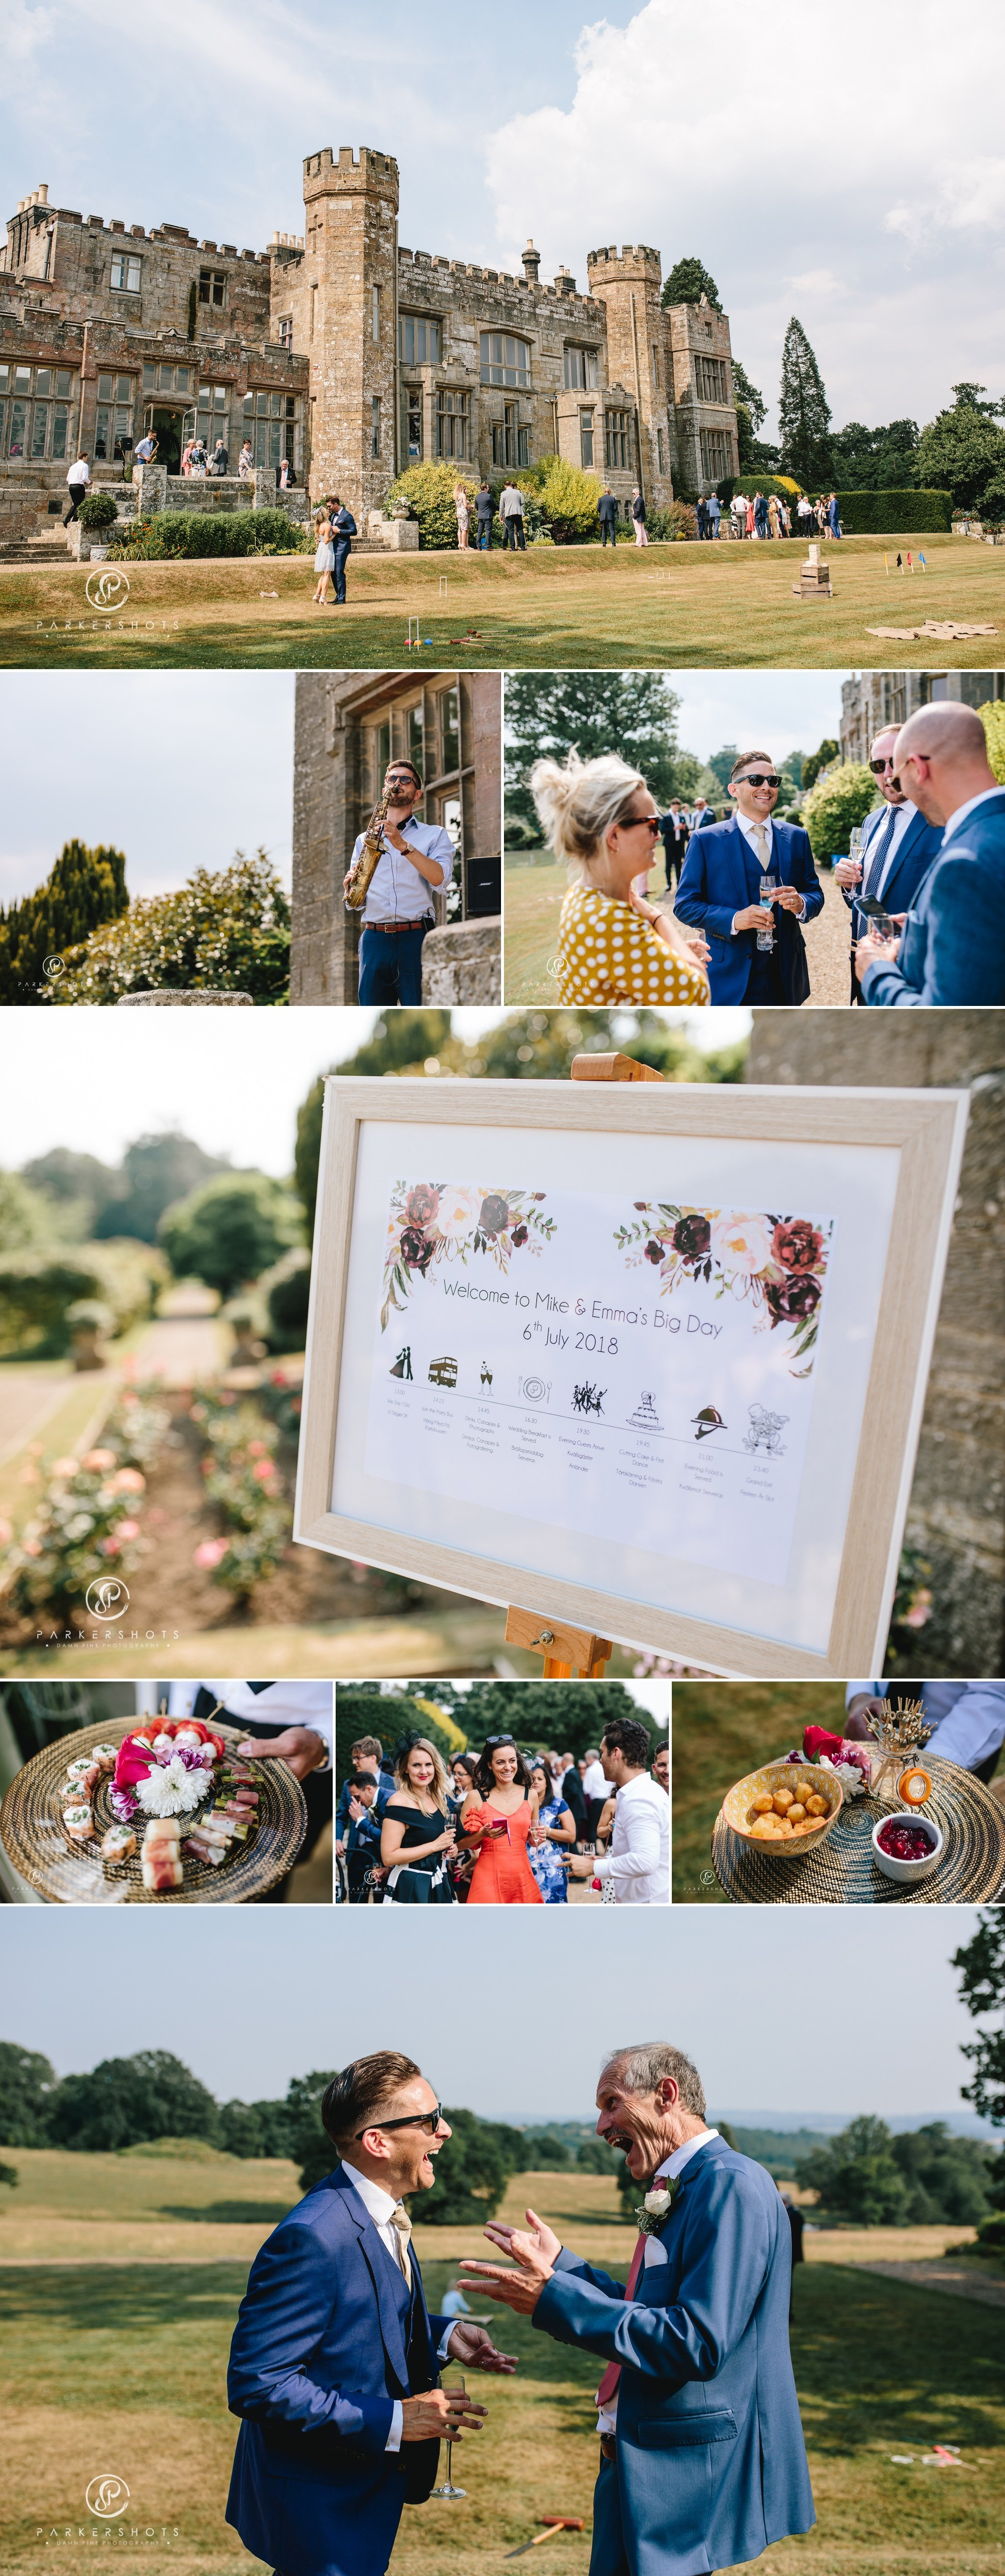 Wadhurst Castle Wedding Photographer - Drinks reception